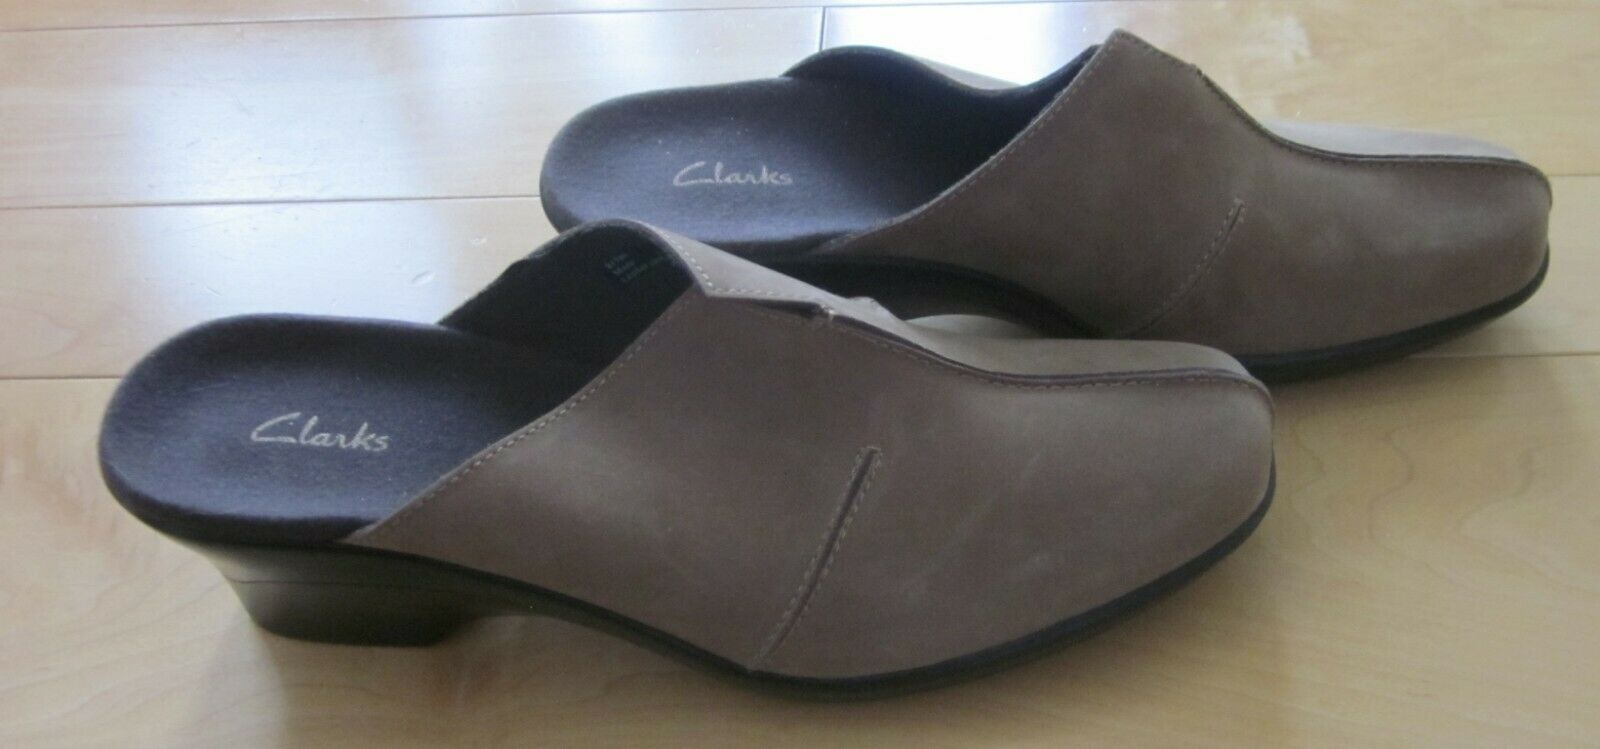 New Clarks Wms Tan Leather Suede Mules   Slides 9